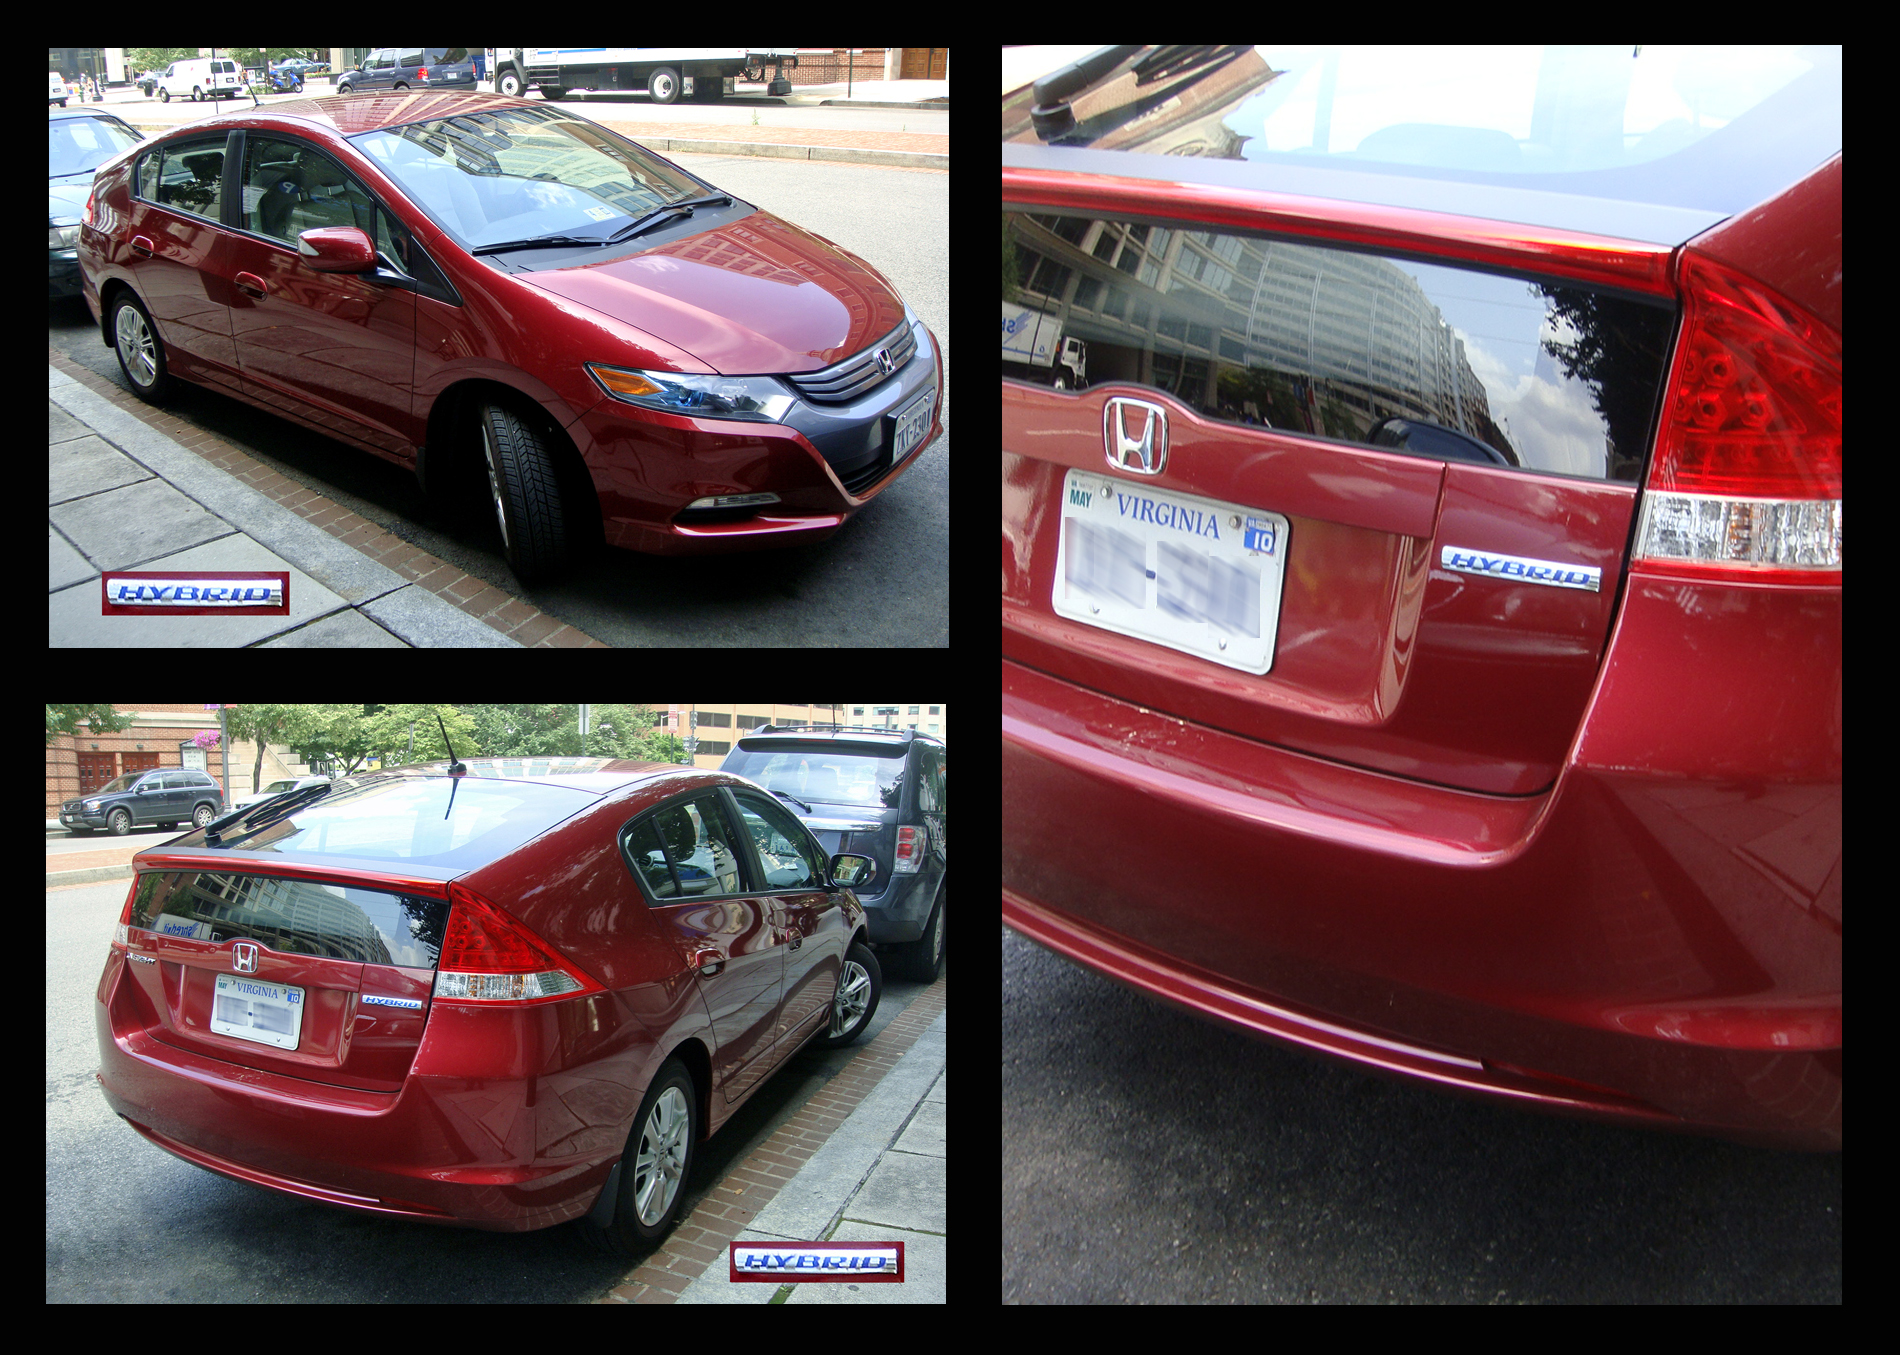 honda insight wikipediau s honda insight, shown front, rear, and the hybrid badging